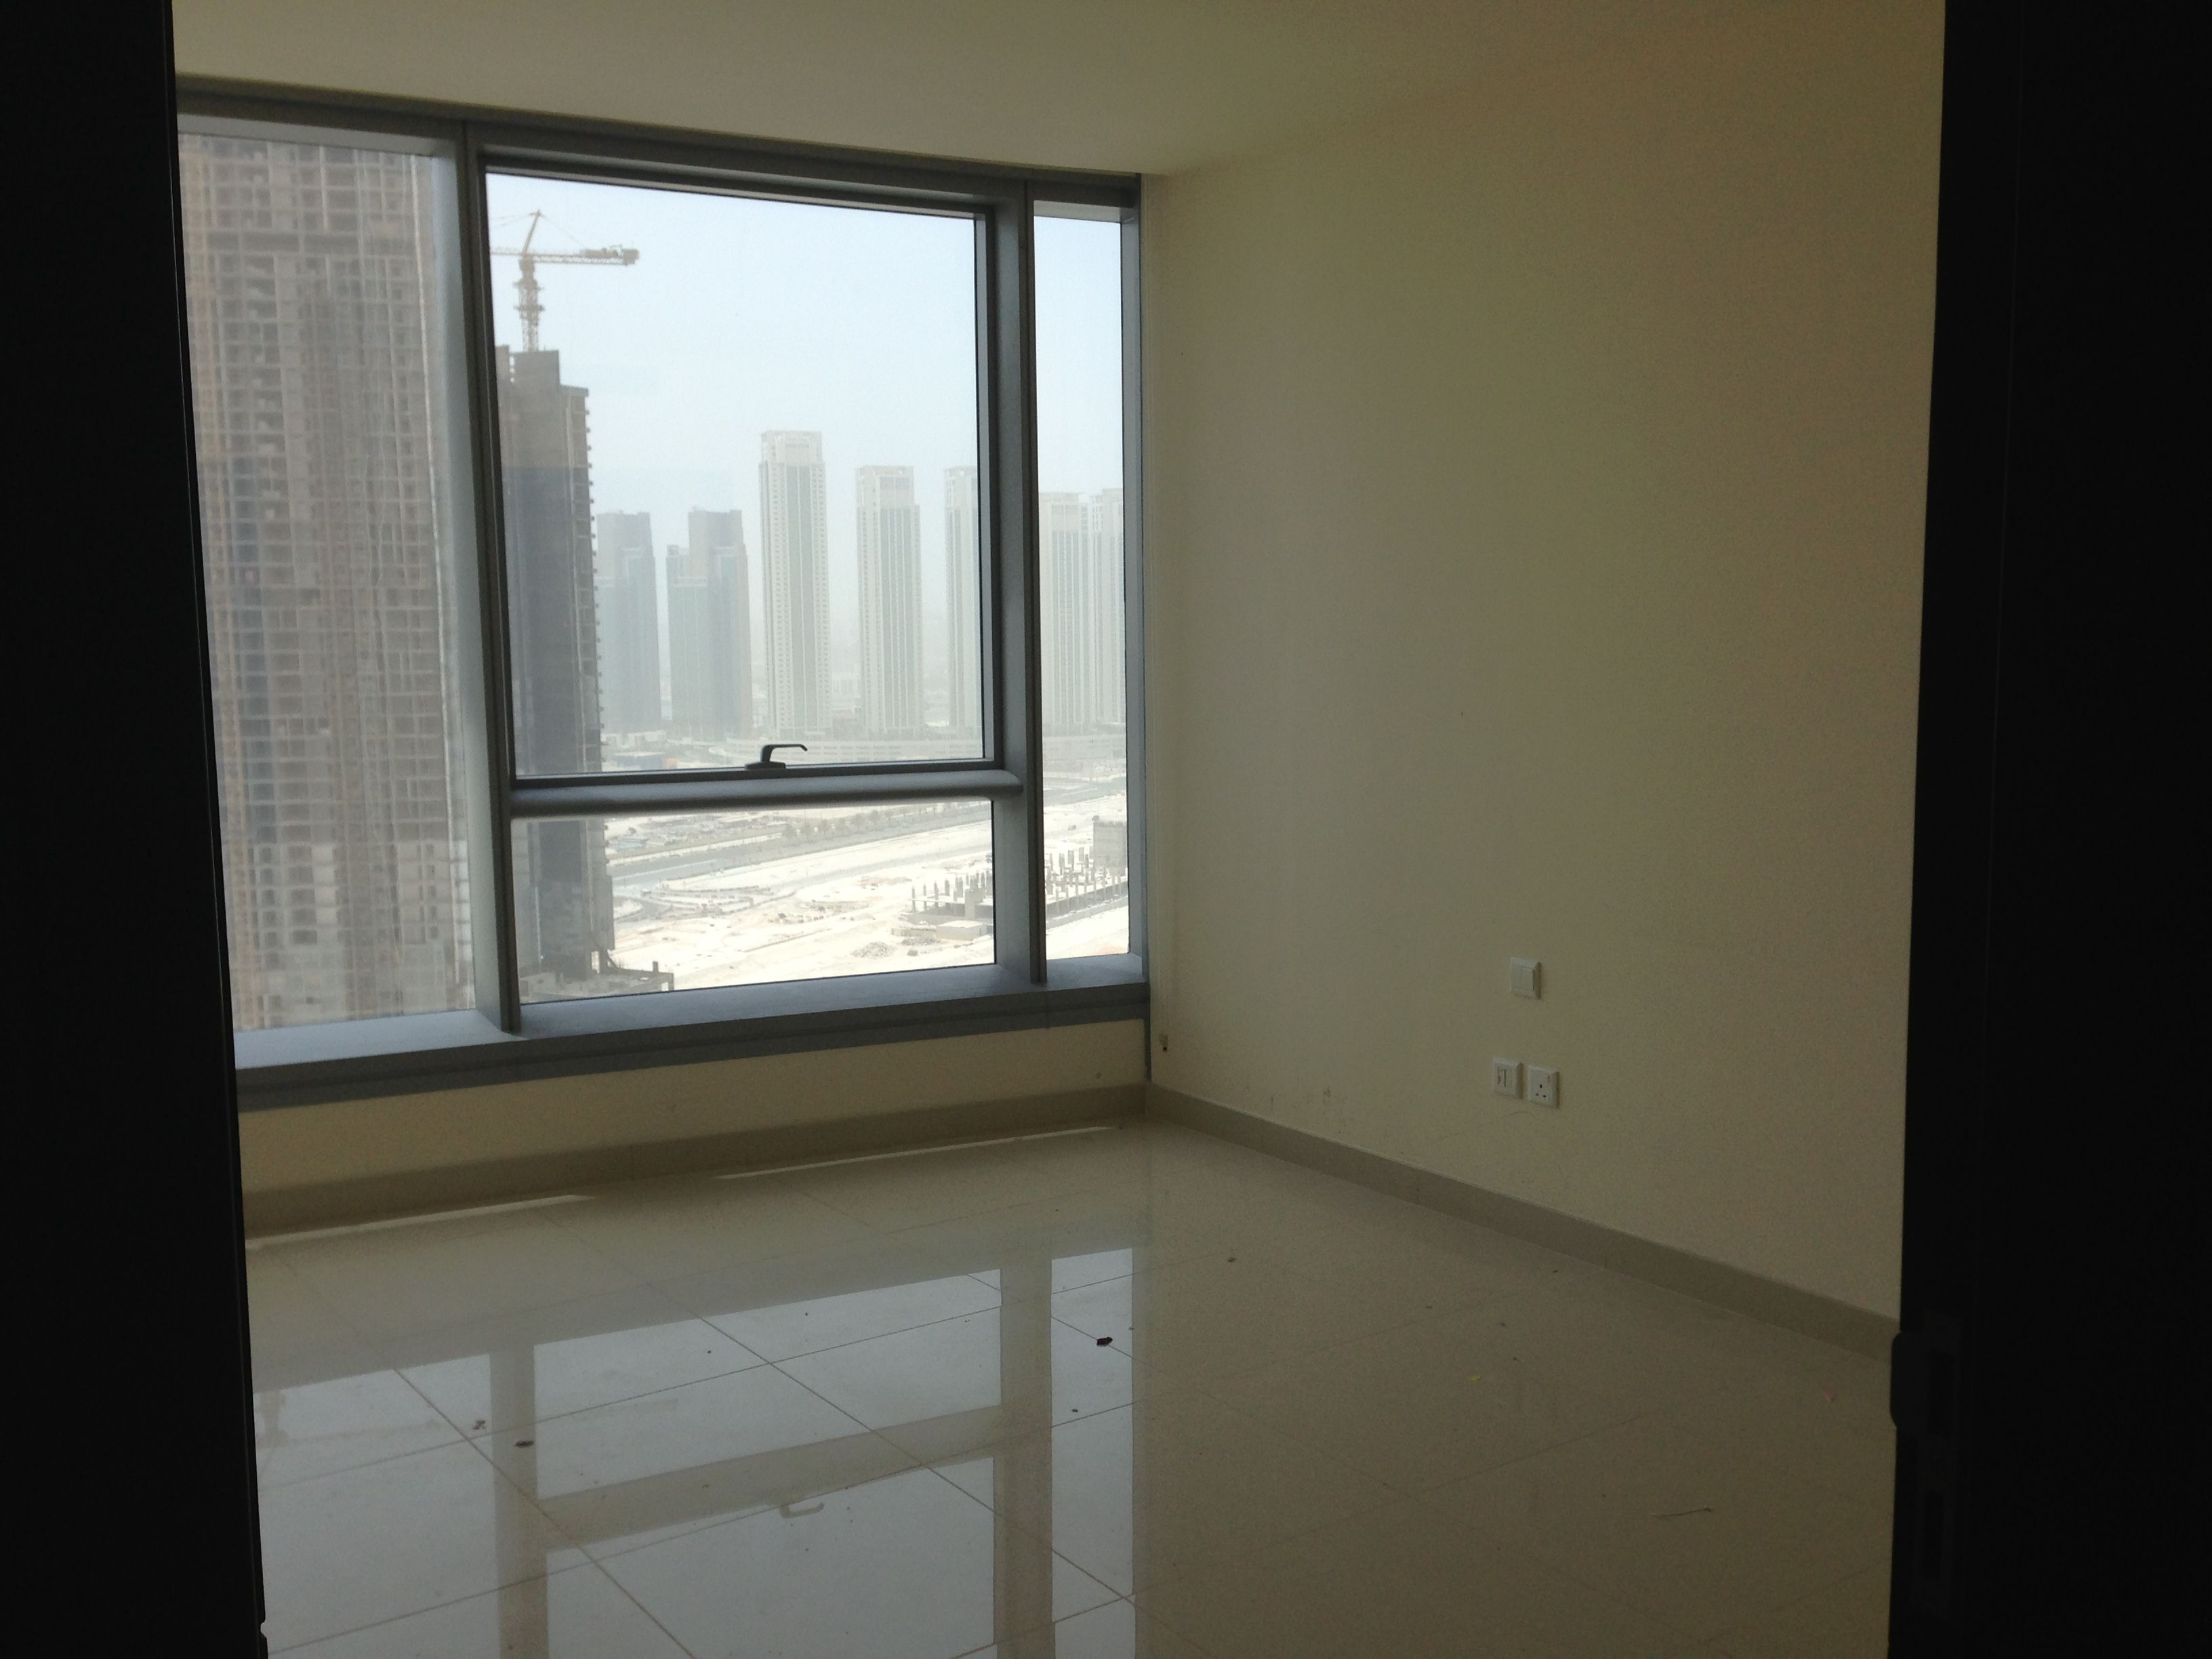 2 Bedrooms Apartment For Rent In Sky Tower Al Reem Island Abu Dhabi It Consists Of 2 Bedrooms Plus Apartments For Rent 2 Bedroom Apartment Apartment